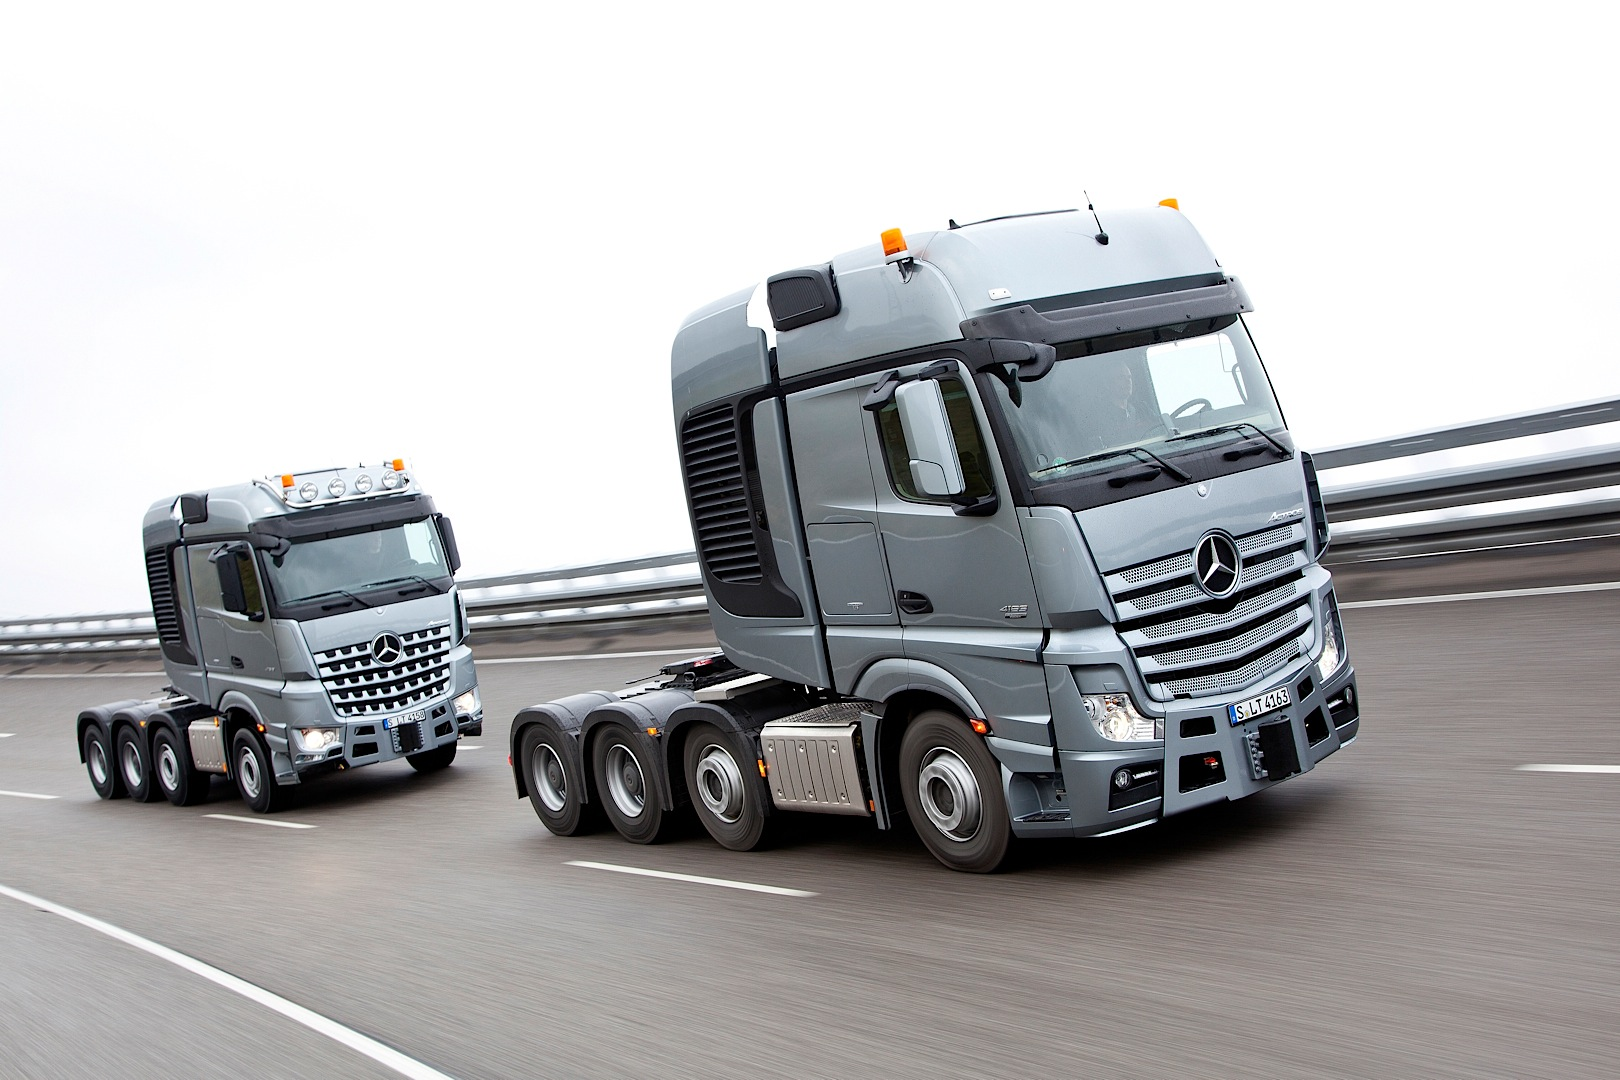 Mercedes Benz Actros Slt And Arocs Slt Can Haul Anything